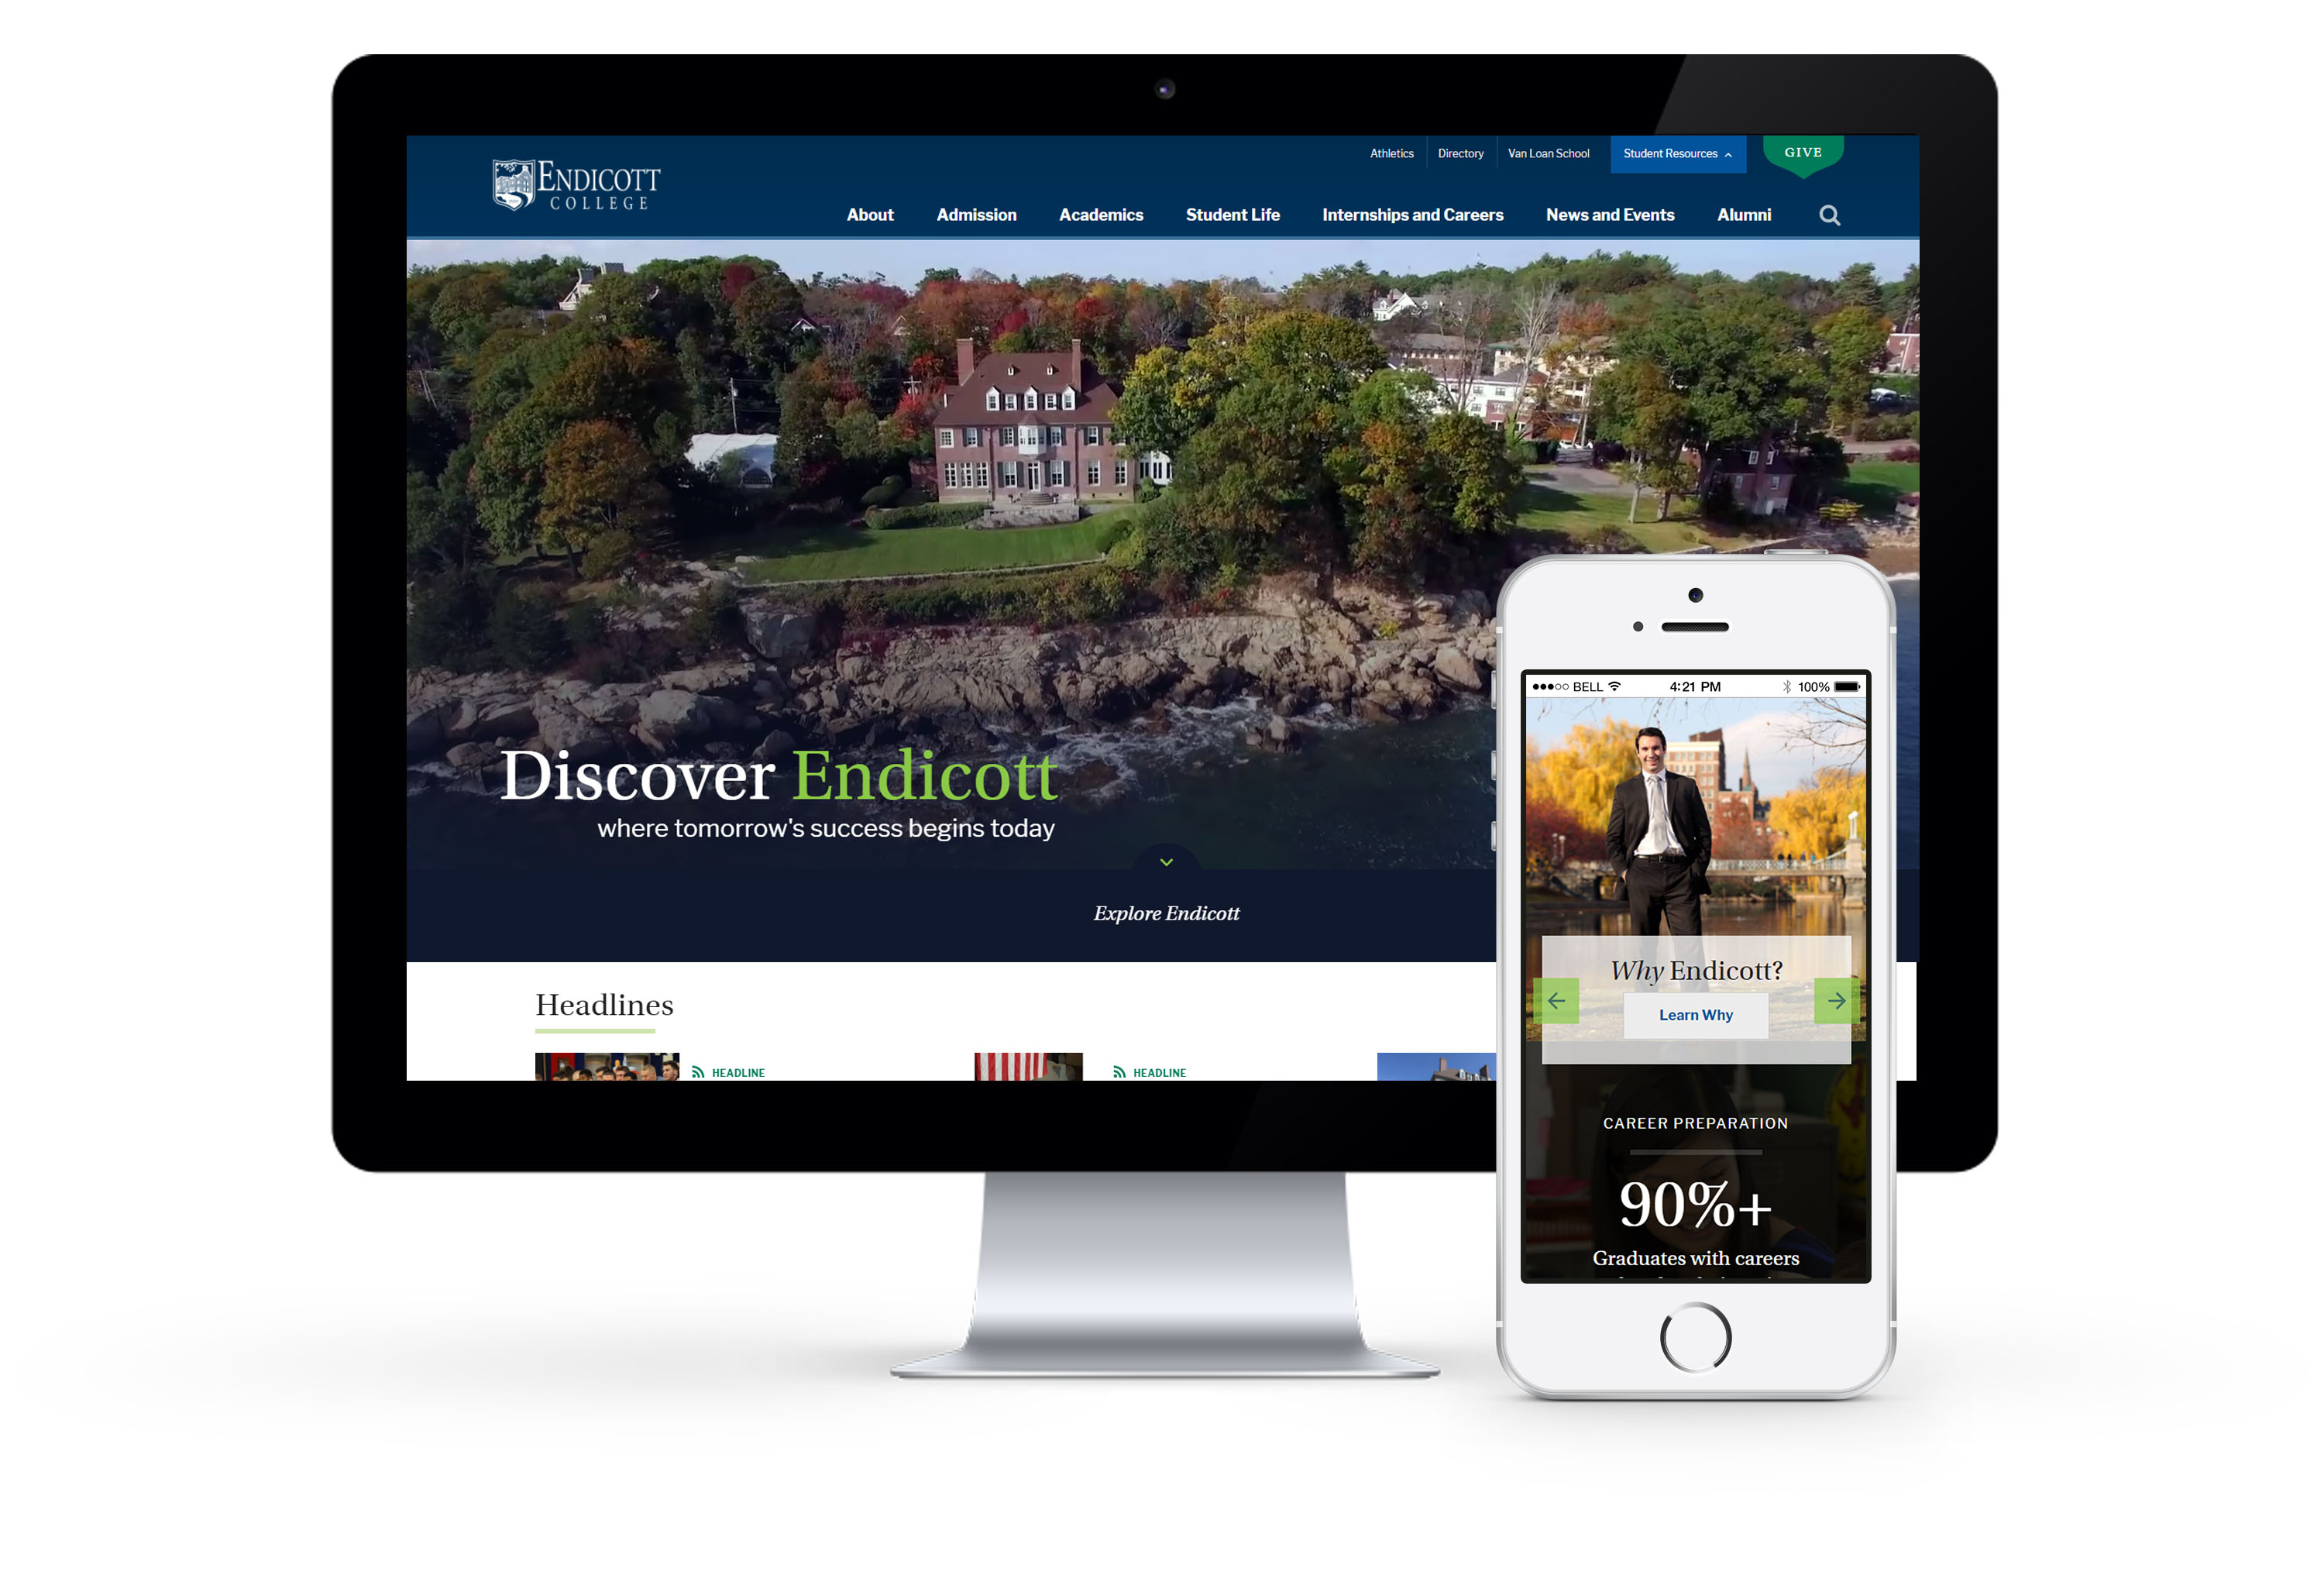 desktop and mobile view of endicott website design